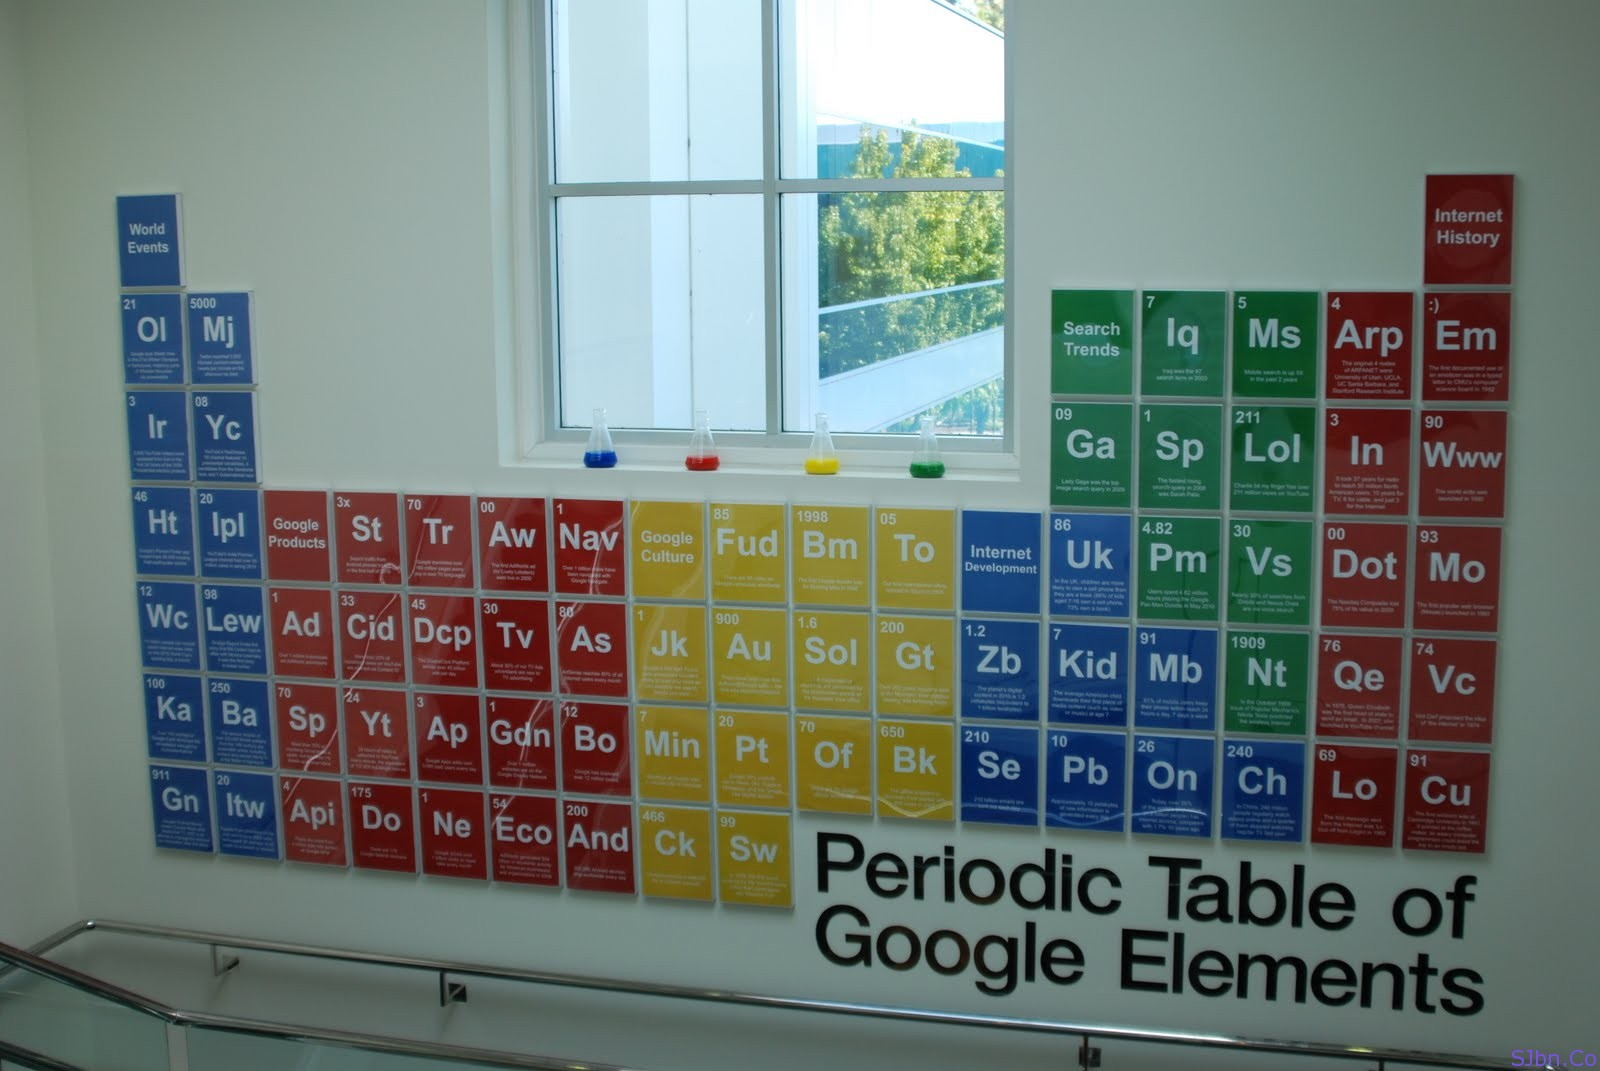 Periodic Table of Google Elements (Mountain View) - an arrangement of facts and stats about Google and the Internet